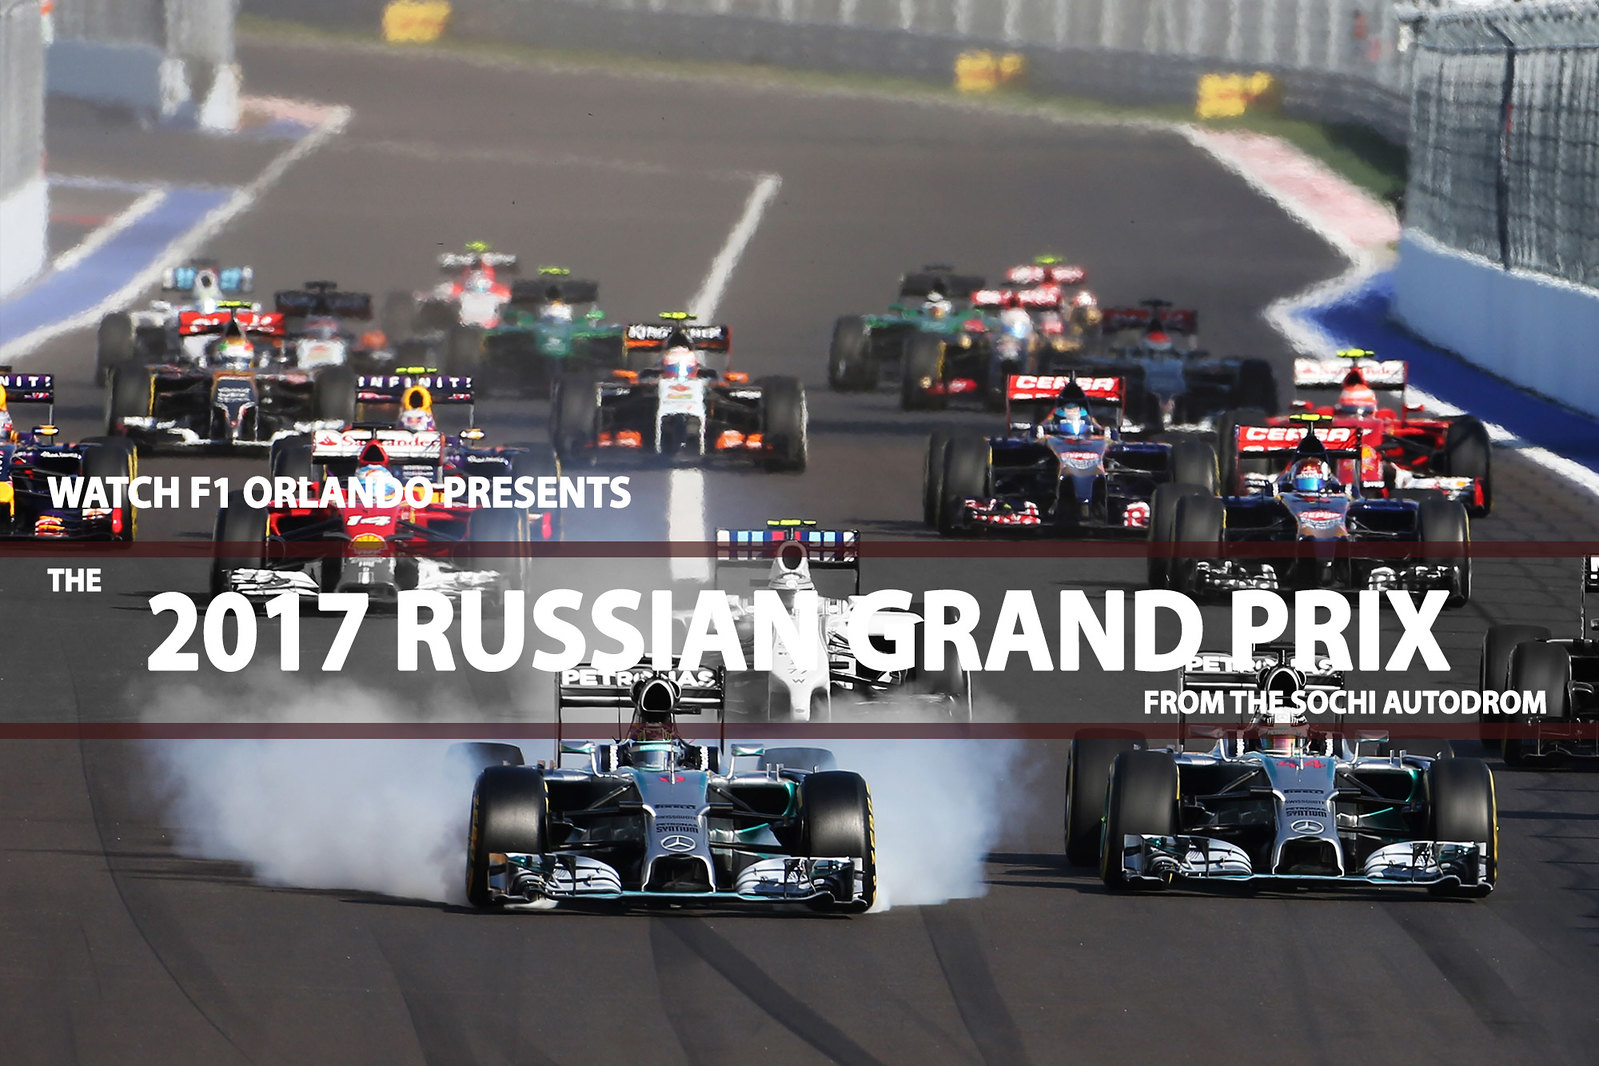 formula1 2017 russian grand prix practice 2 28th april 2017 all racing in the world. Black Bedroom Furniture Sets. Home Design Ideas